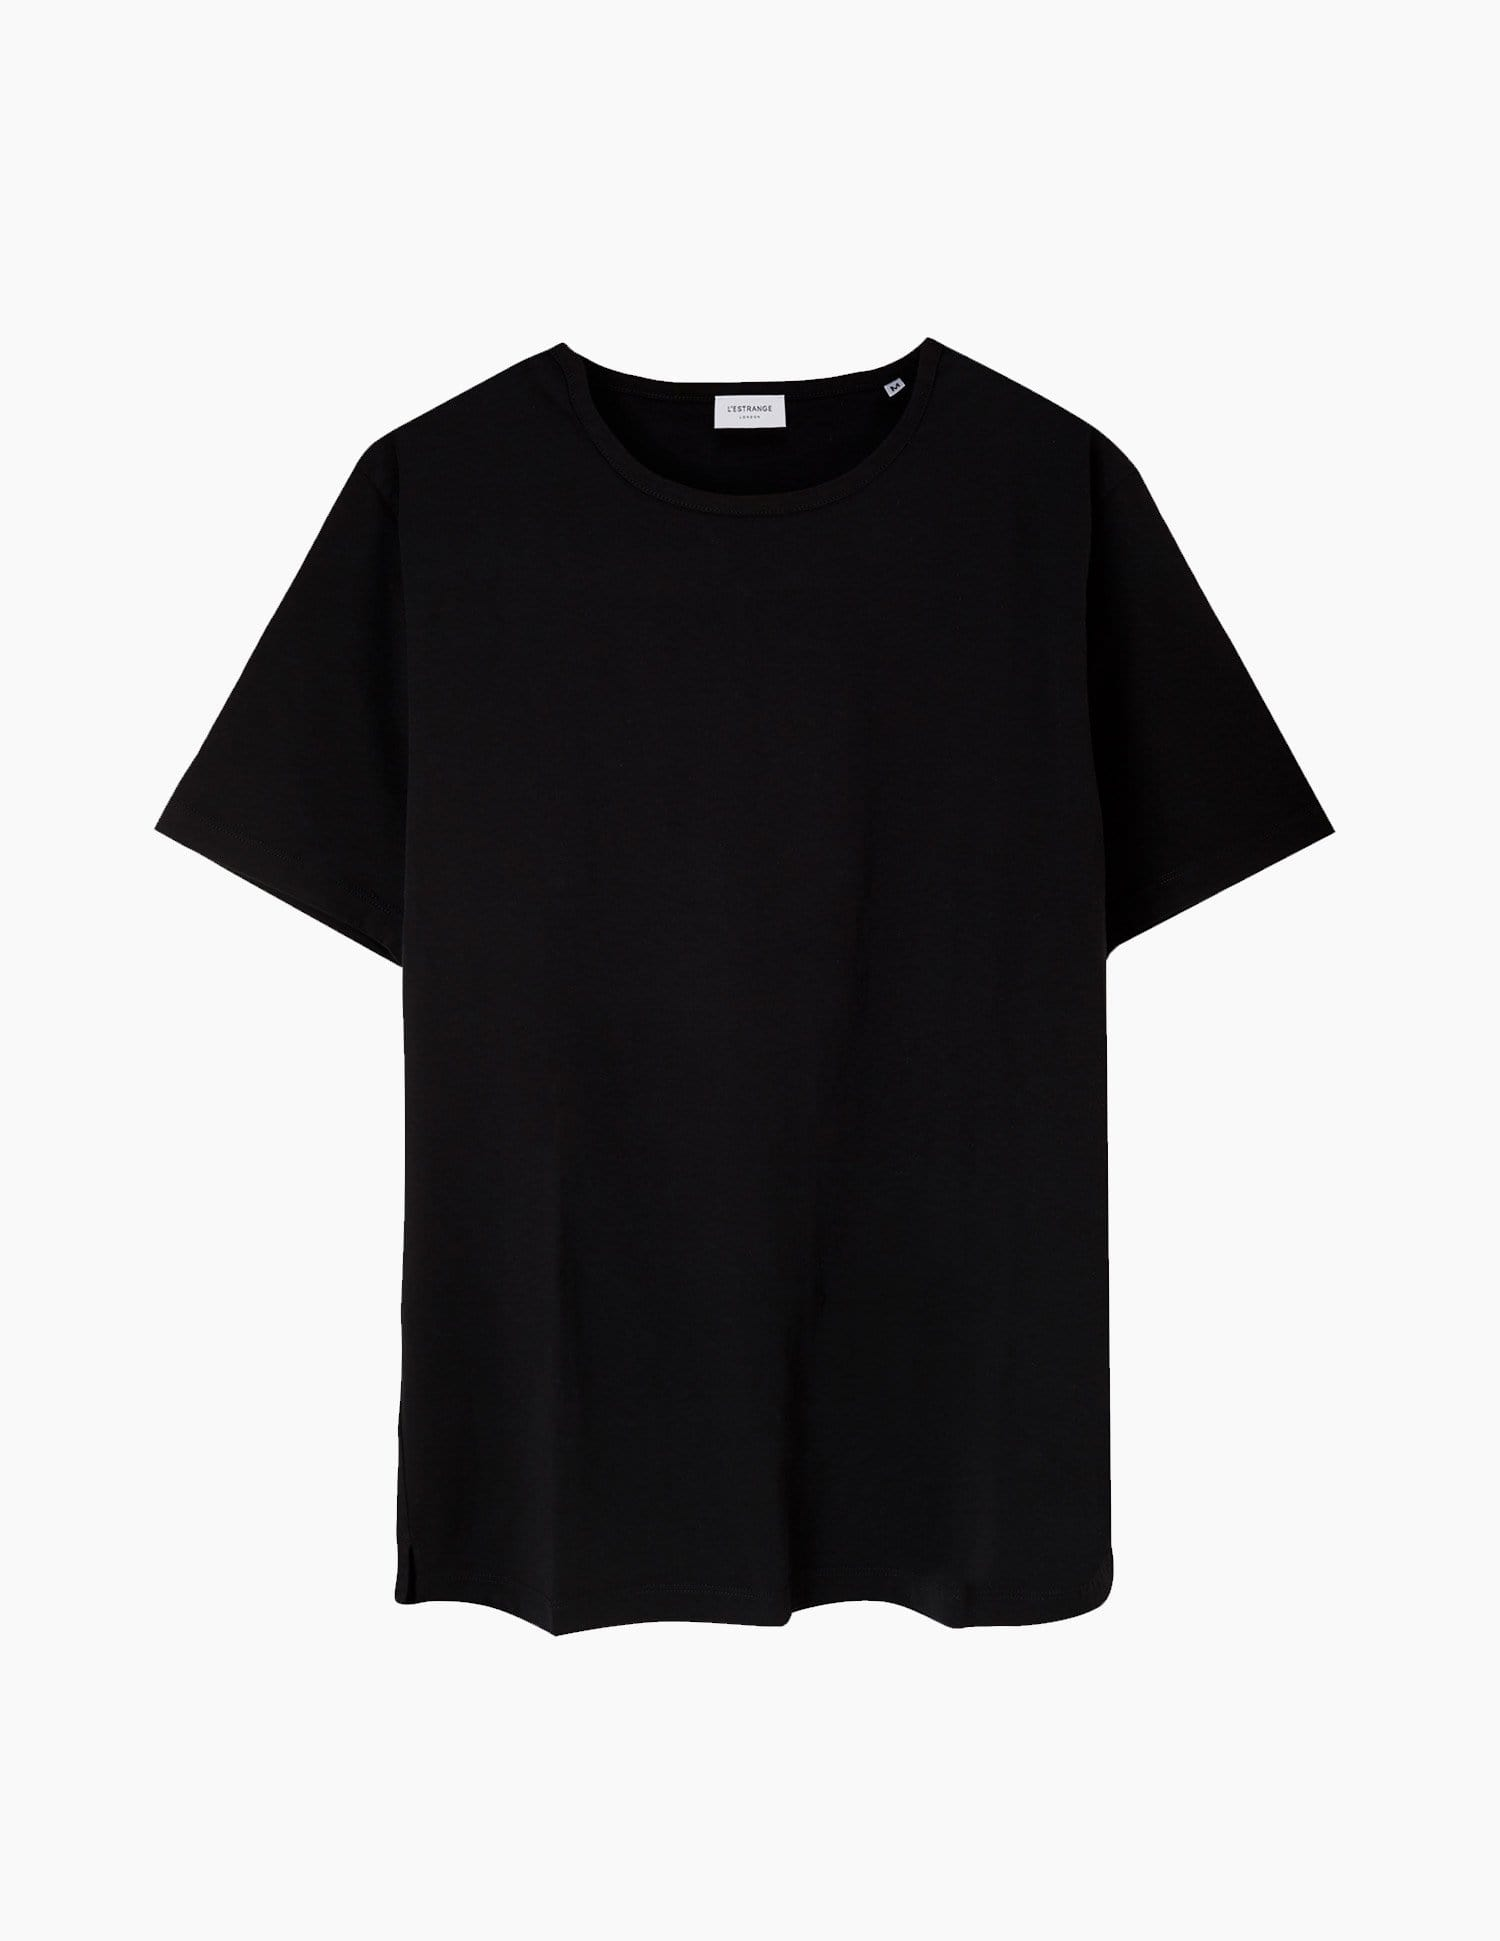 The Tailored Tee || Black | Supima Cotton